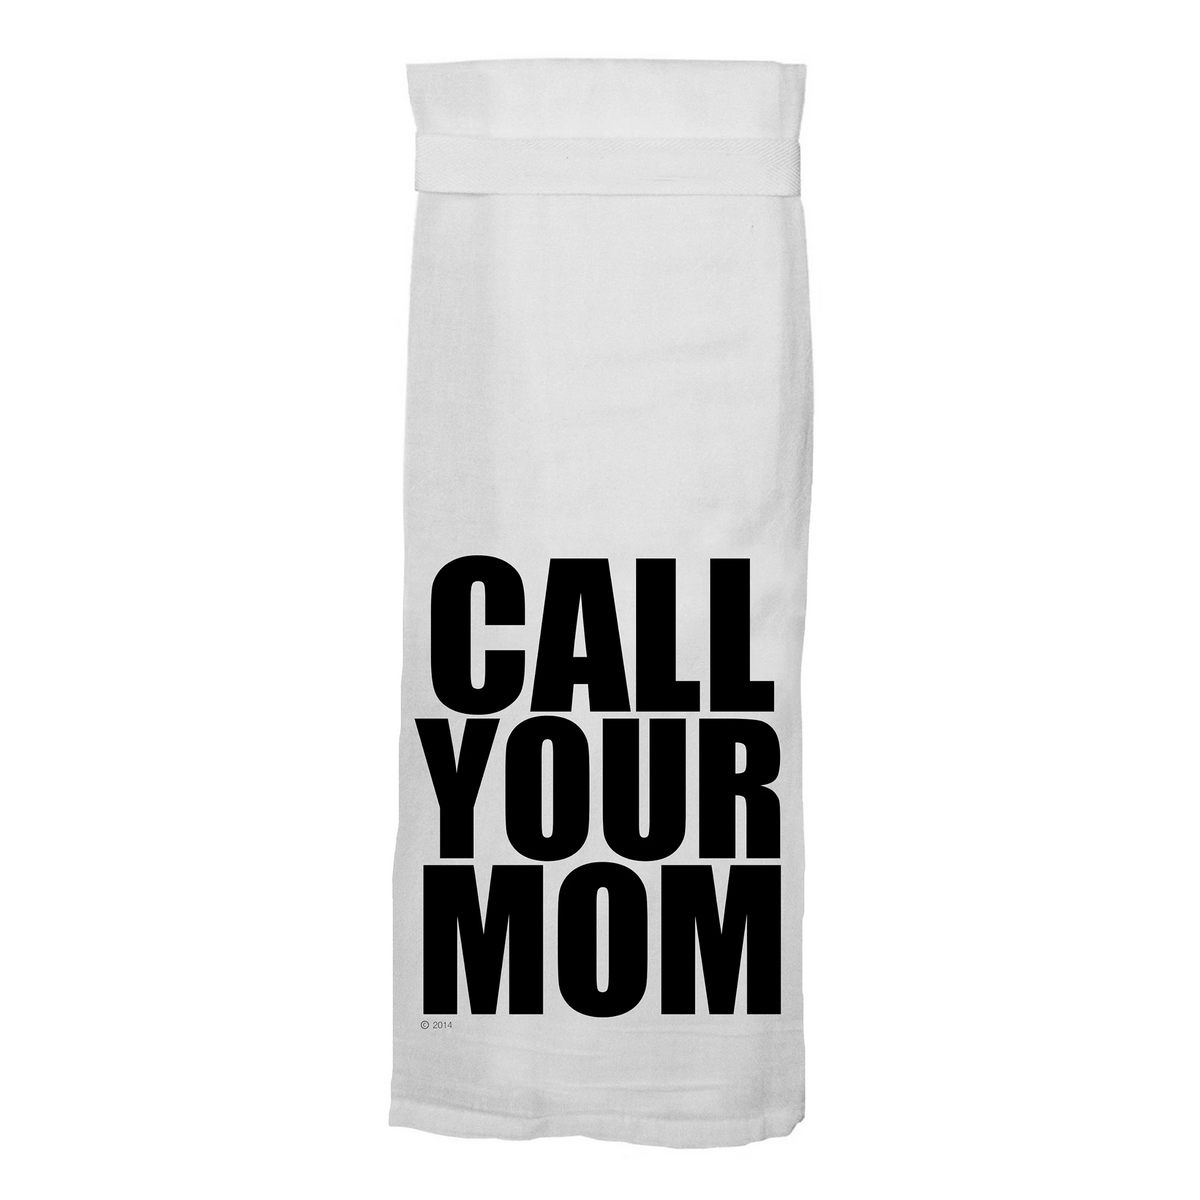 Call Your Mom Hang Tight Towel - Heart of the Home PA